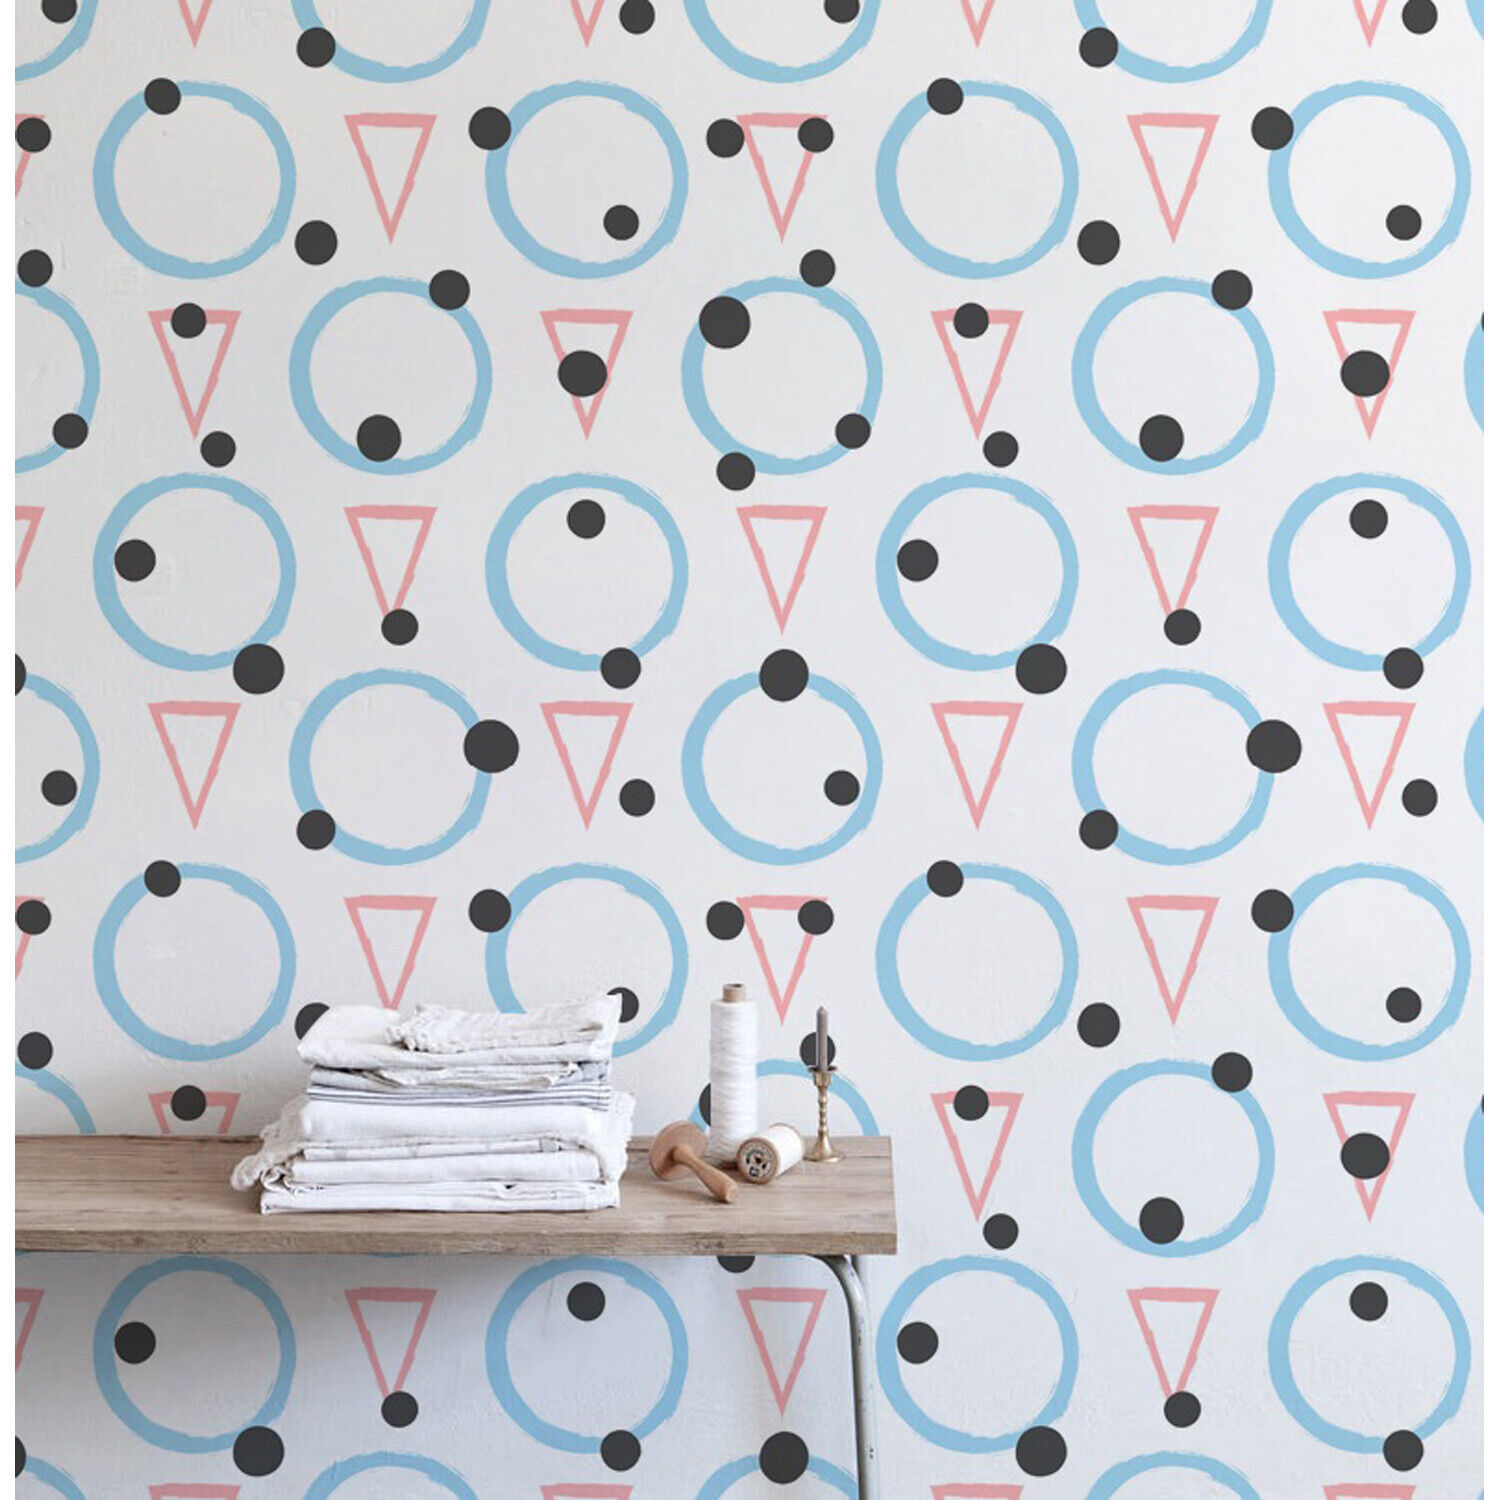 Triangles and Circles Hand drawn Non-woven wallpaper Home wall mural Decal